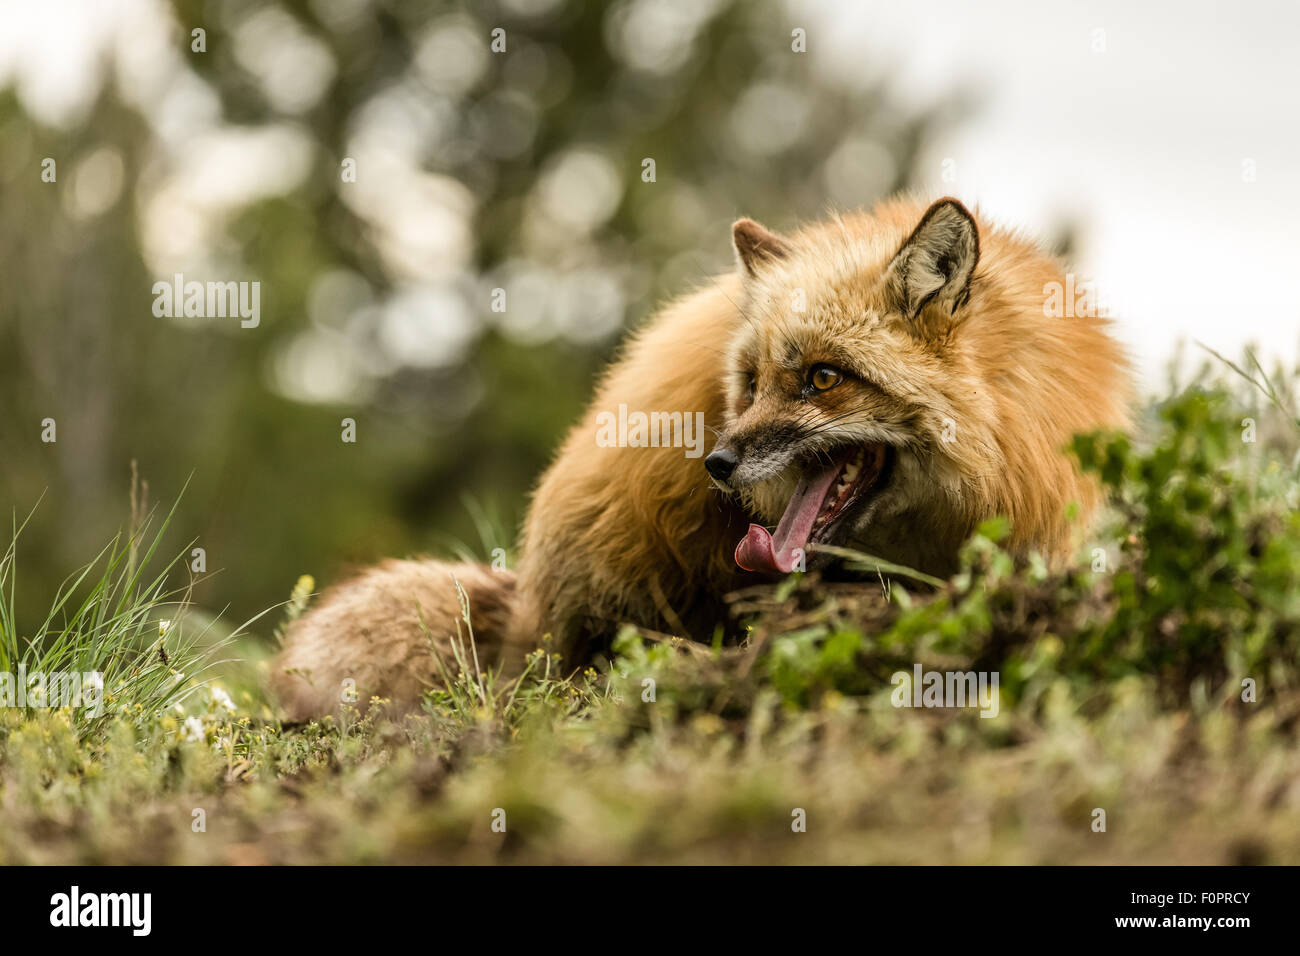 Adult Red Fox cautious about whether it's safe to rest in an indentation in the dirt it had just dug to stay - Stock Image